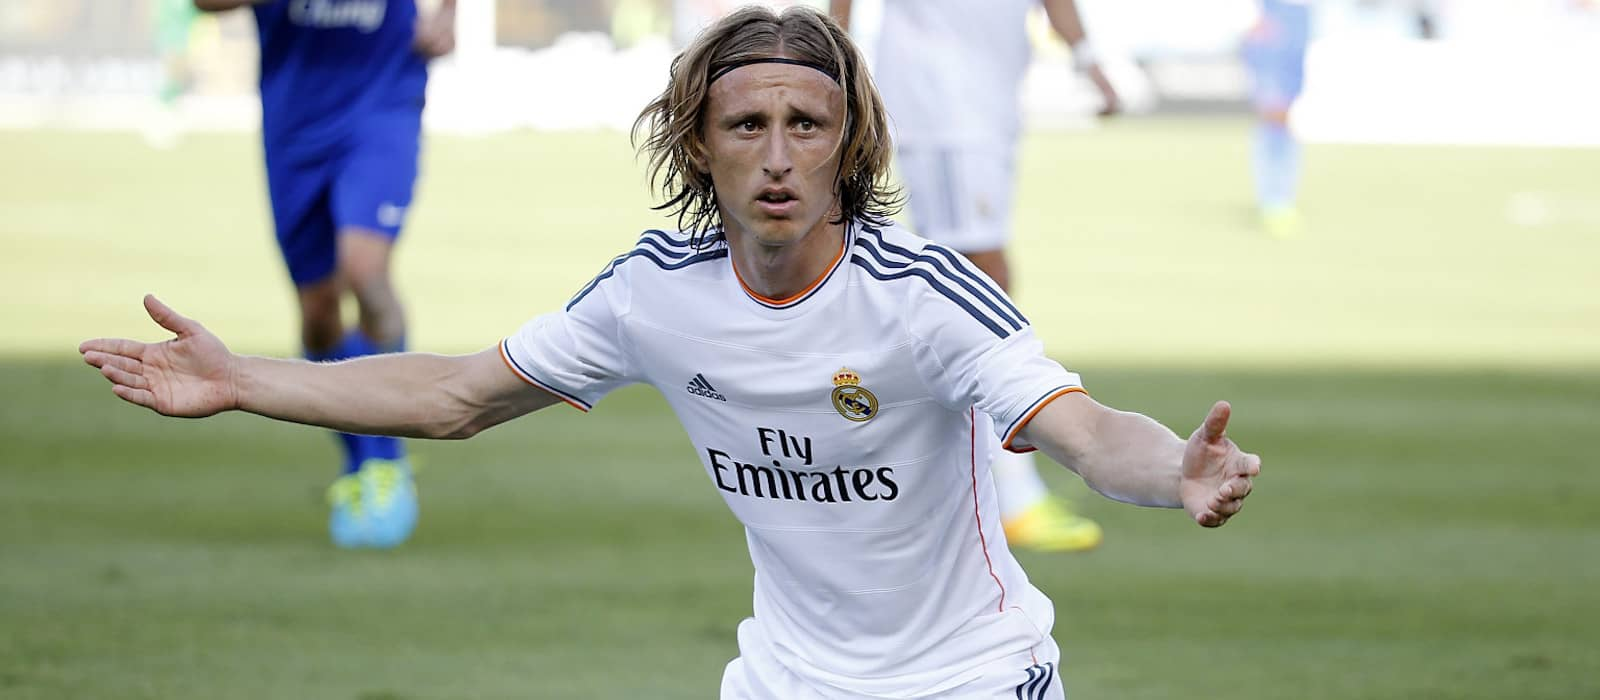 Jose Mourinho speaks effusively about Croatia midfielders Luka Modric and Ivan Rakitic